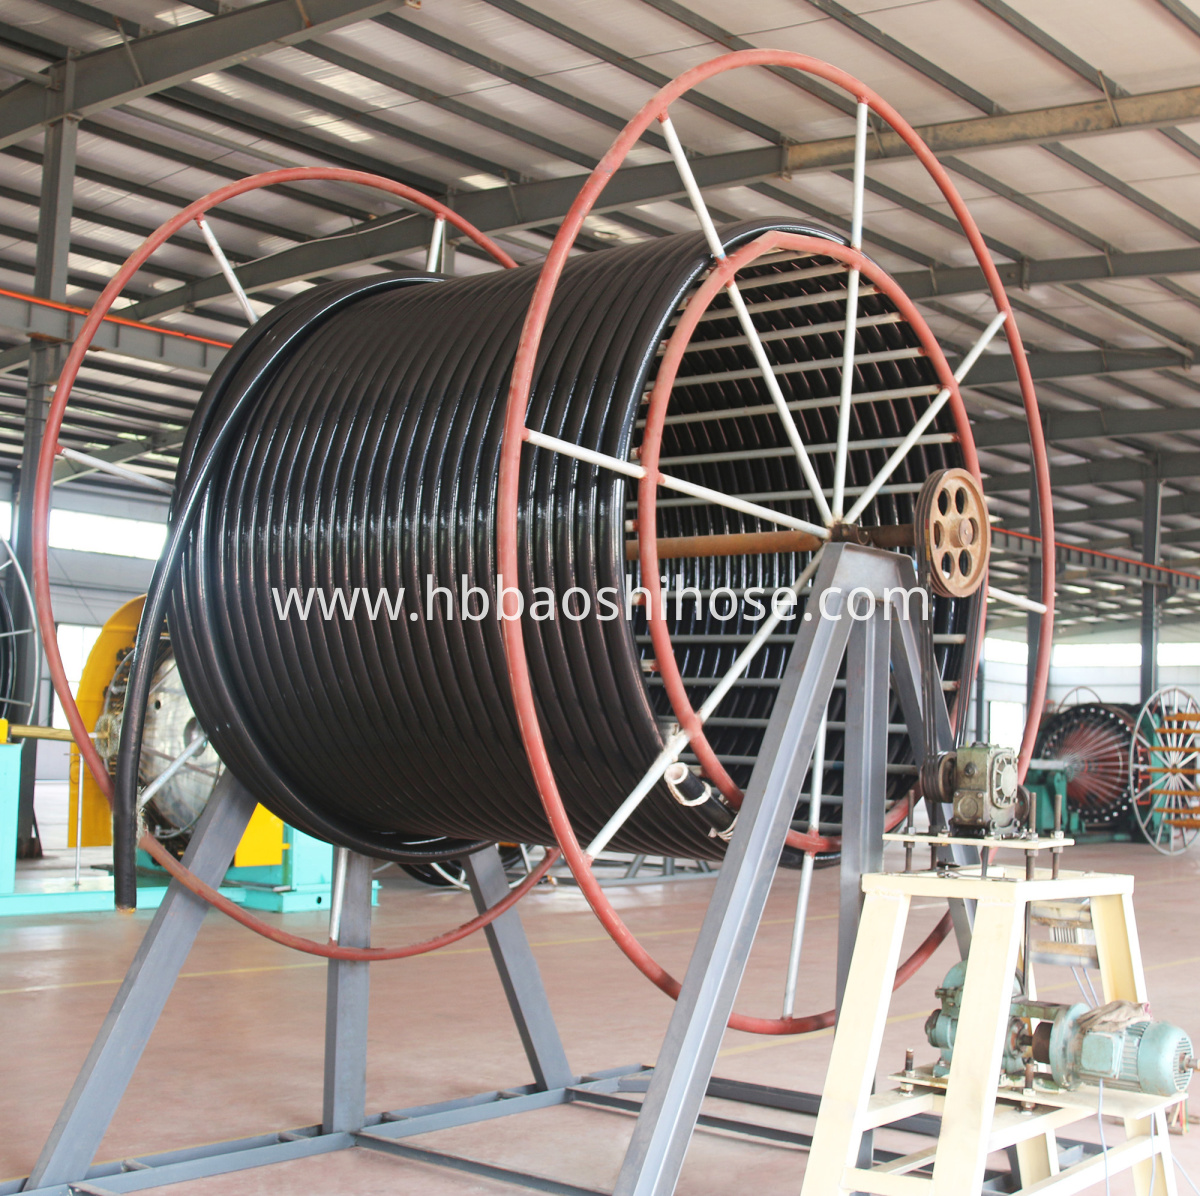 Flexible Composite Offshore Transmision Tube